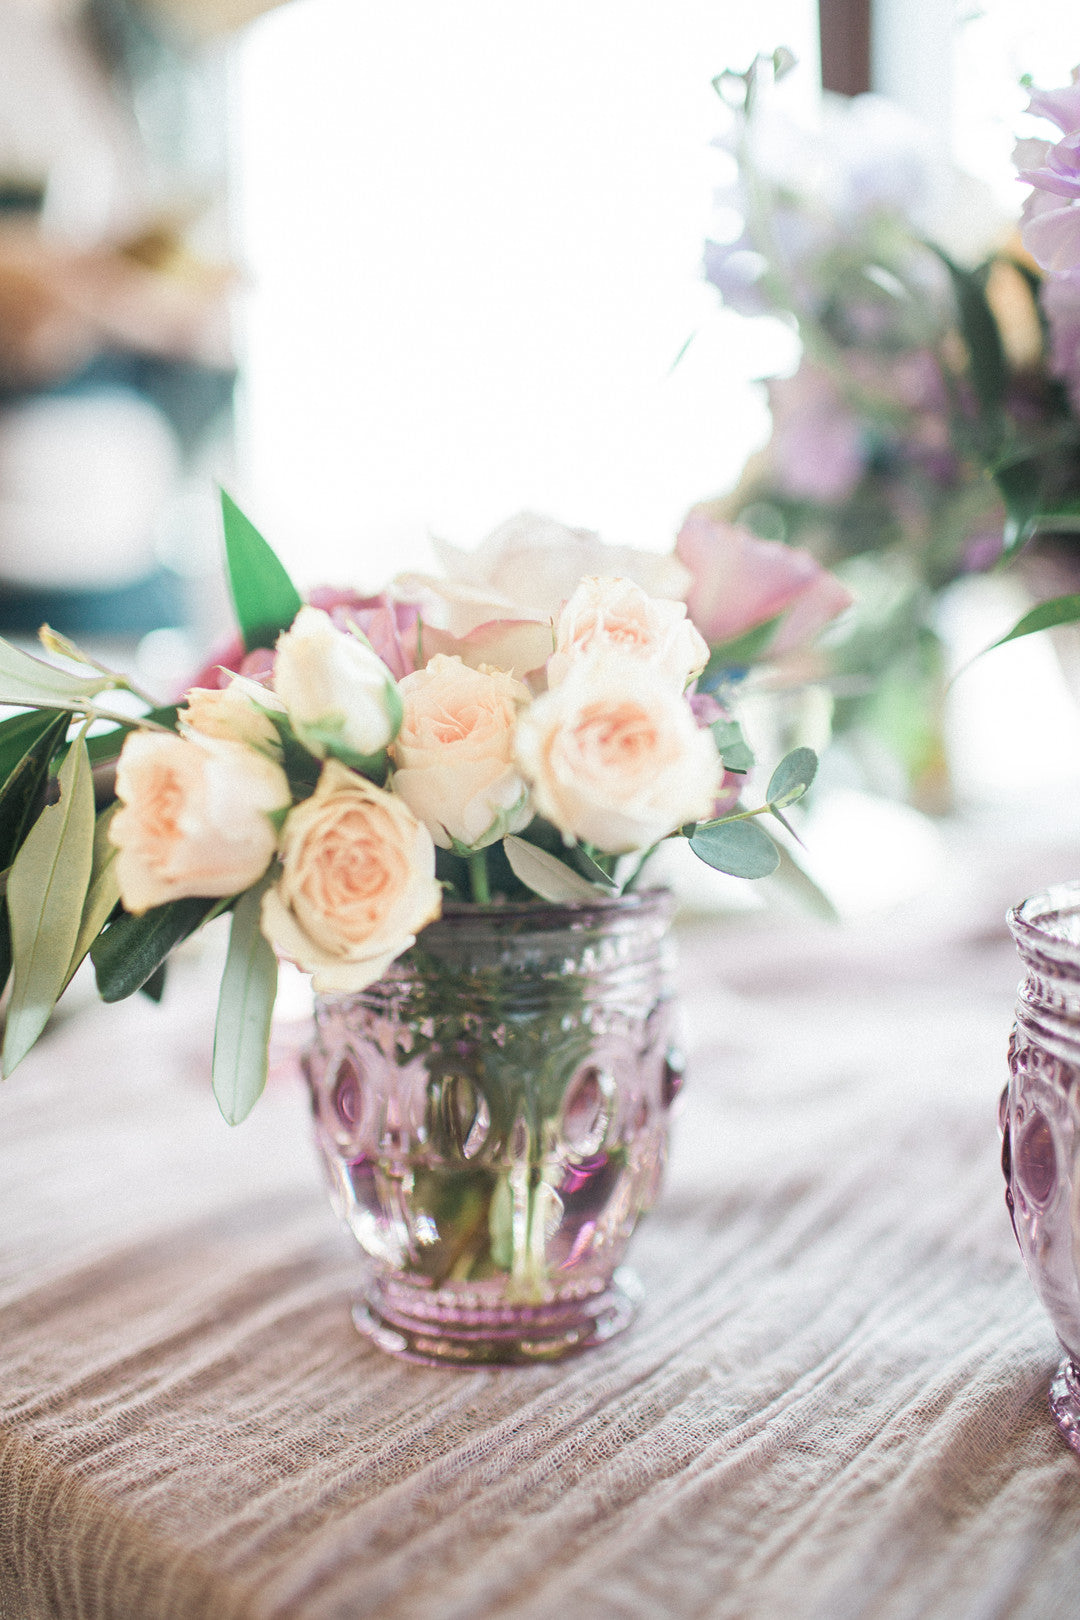 Flowers In Vase | Tips For the Perfect Floral Bridal Shower | Kate Aspen